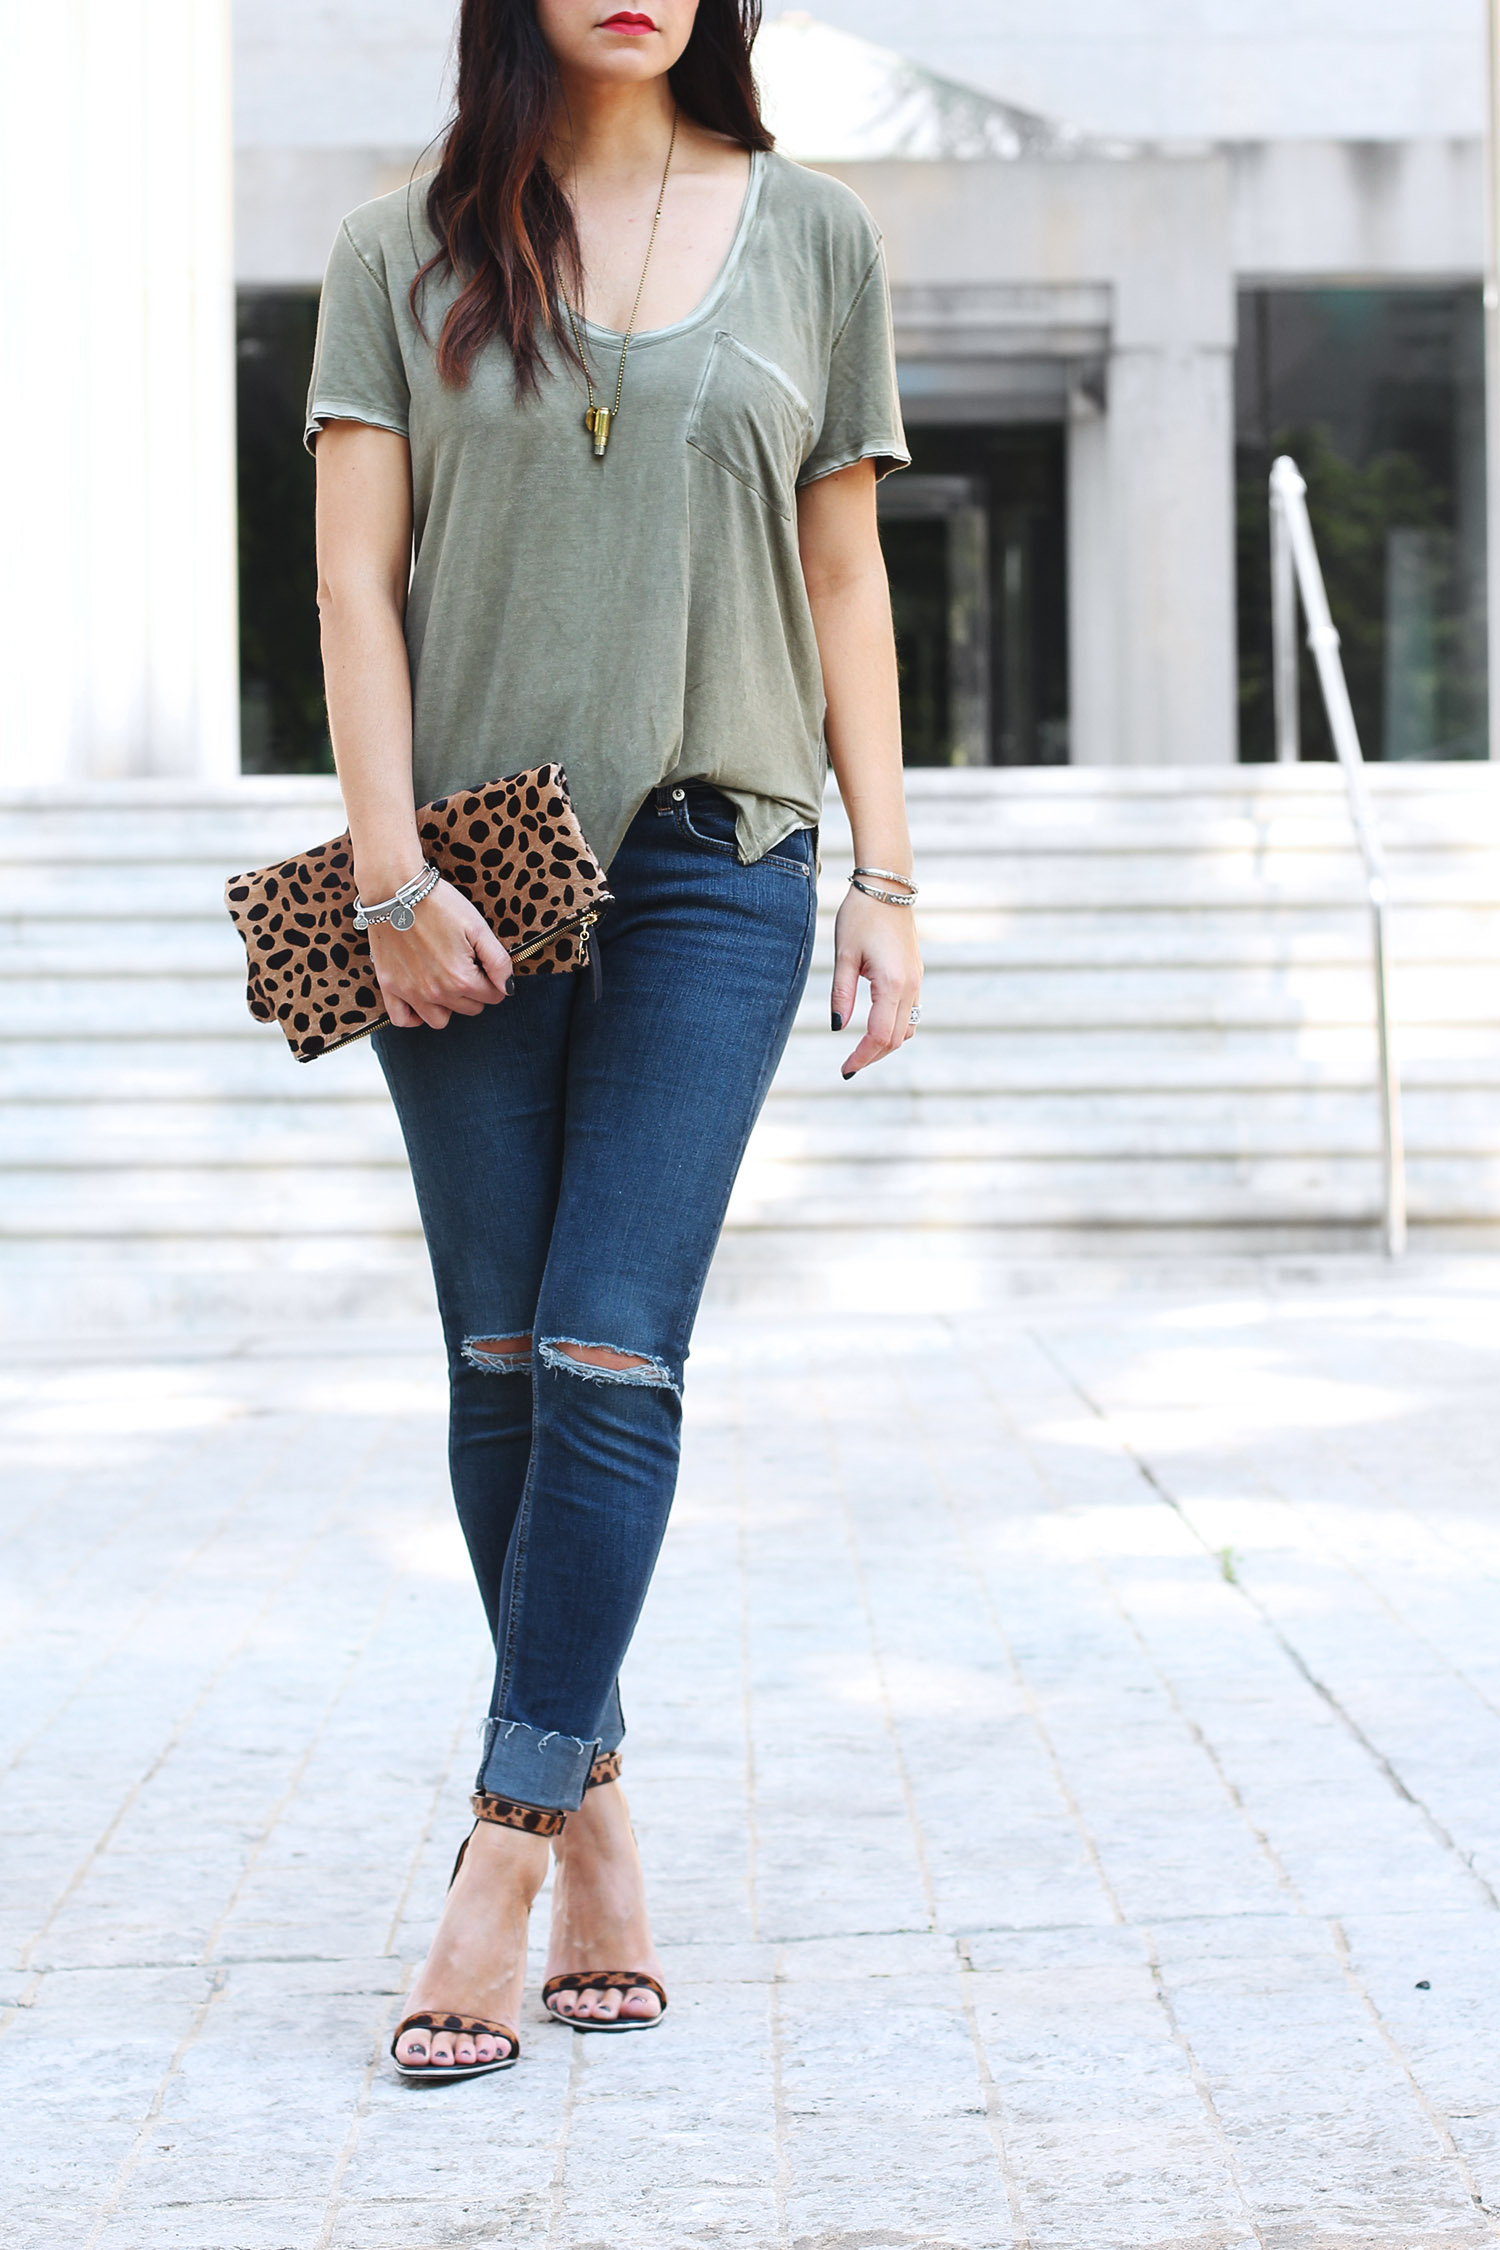 Raw Hem Jeans, Olive Green T-Shirt, Leopard Clutch